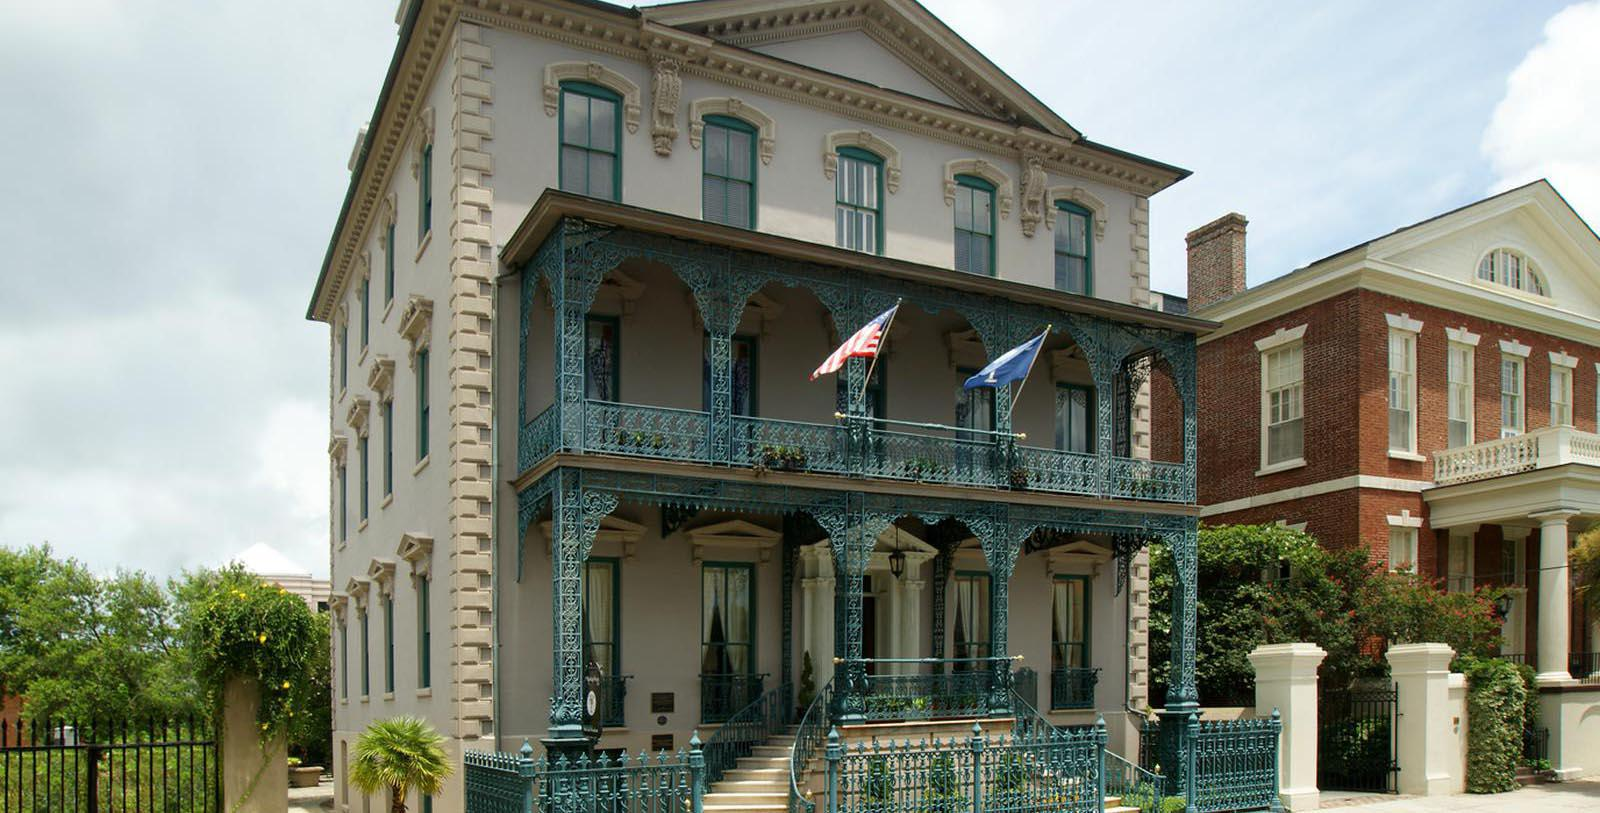 Image of Exterior, John Rutledge House Inn in Charleston, South Carolina, 1763, Member of Historic Hotels of America, Special Offers, Discounted Rates, Families, Romantic Escape, Honeymoons, Anniversaries, Reunions